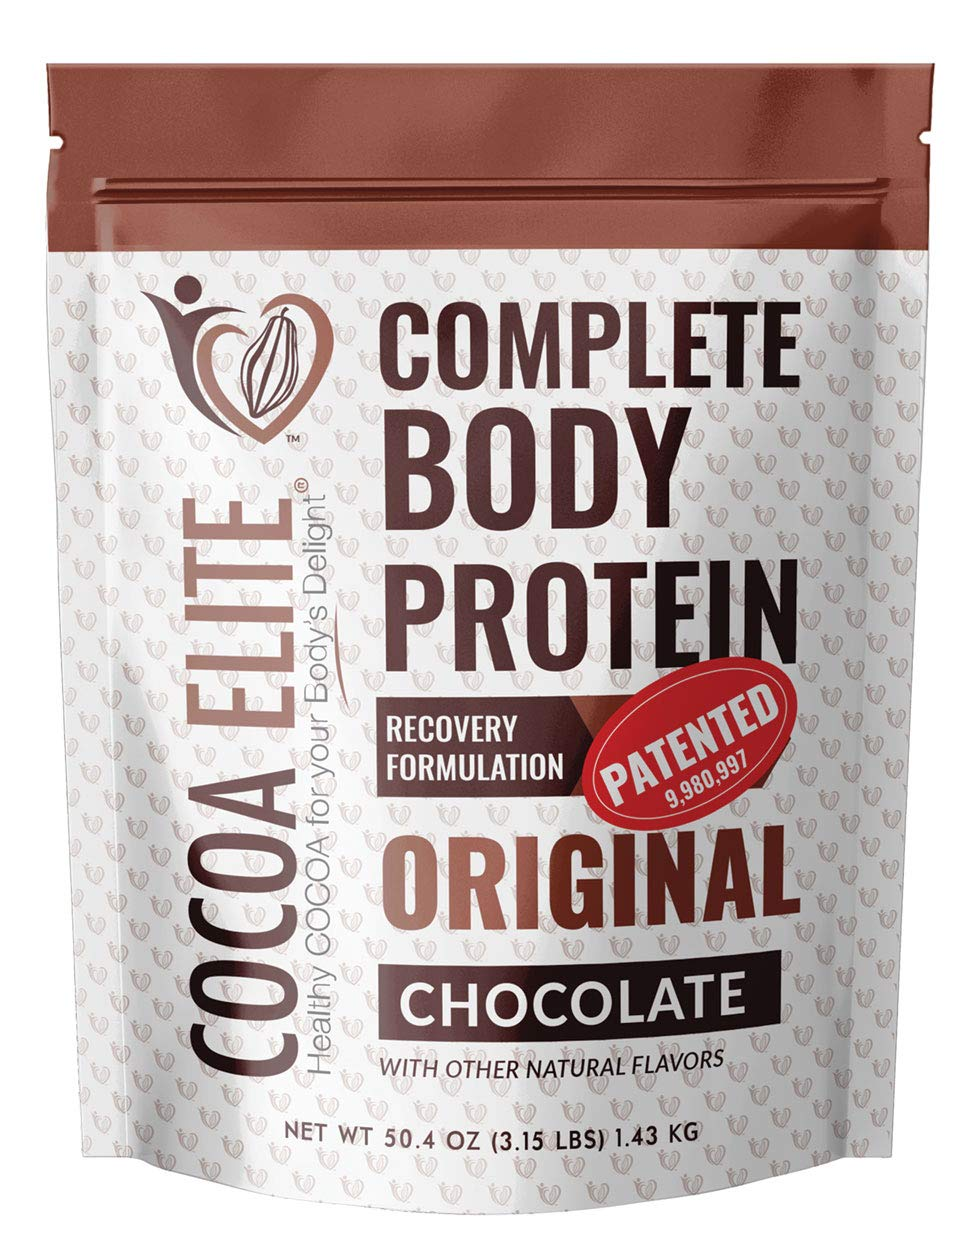 Cocoa Elite Complete Body Recovery Protein